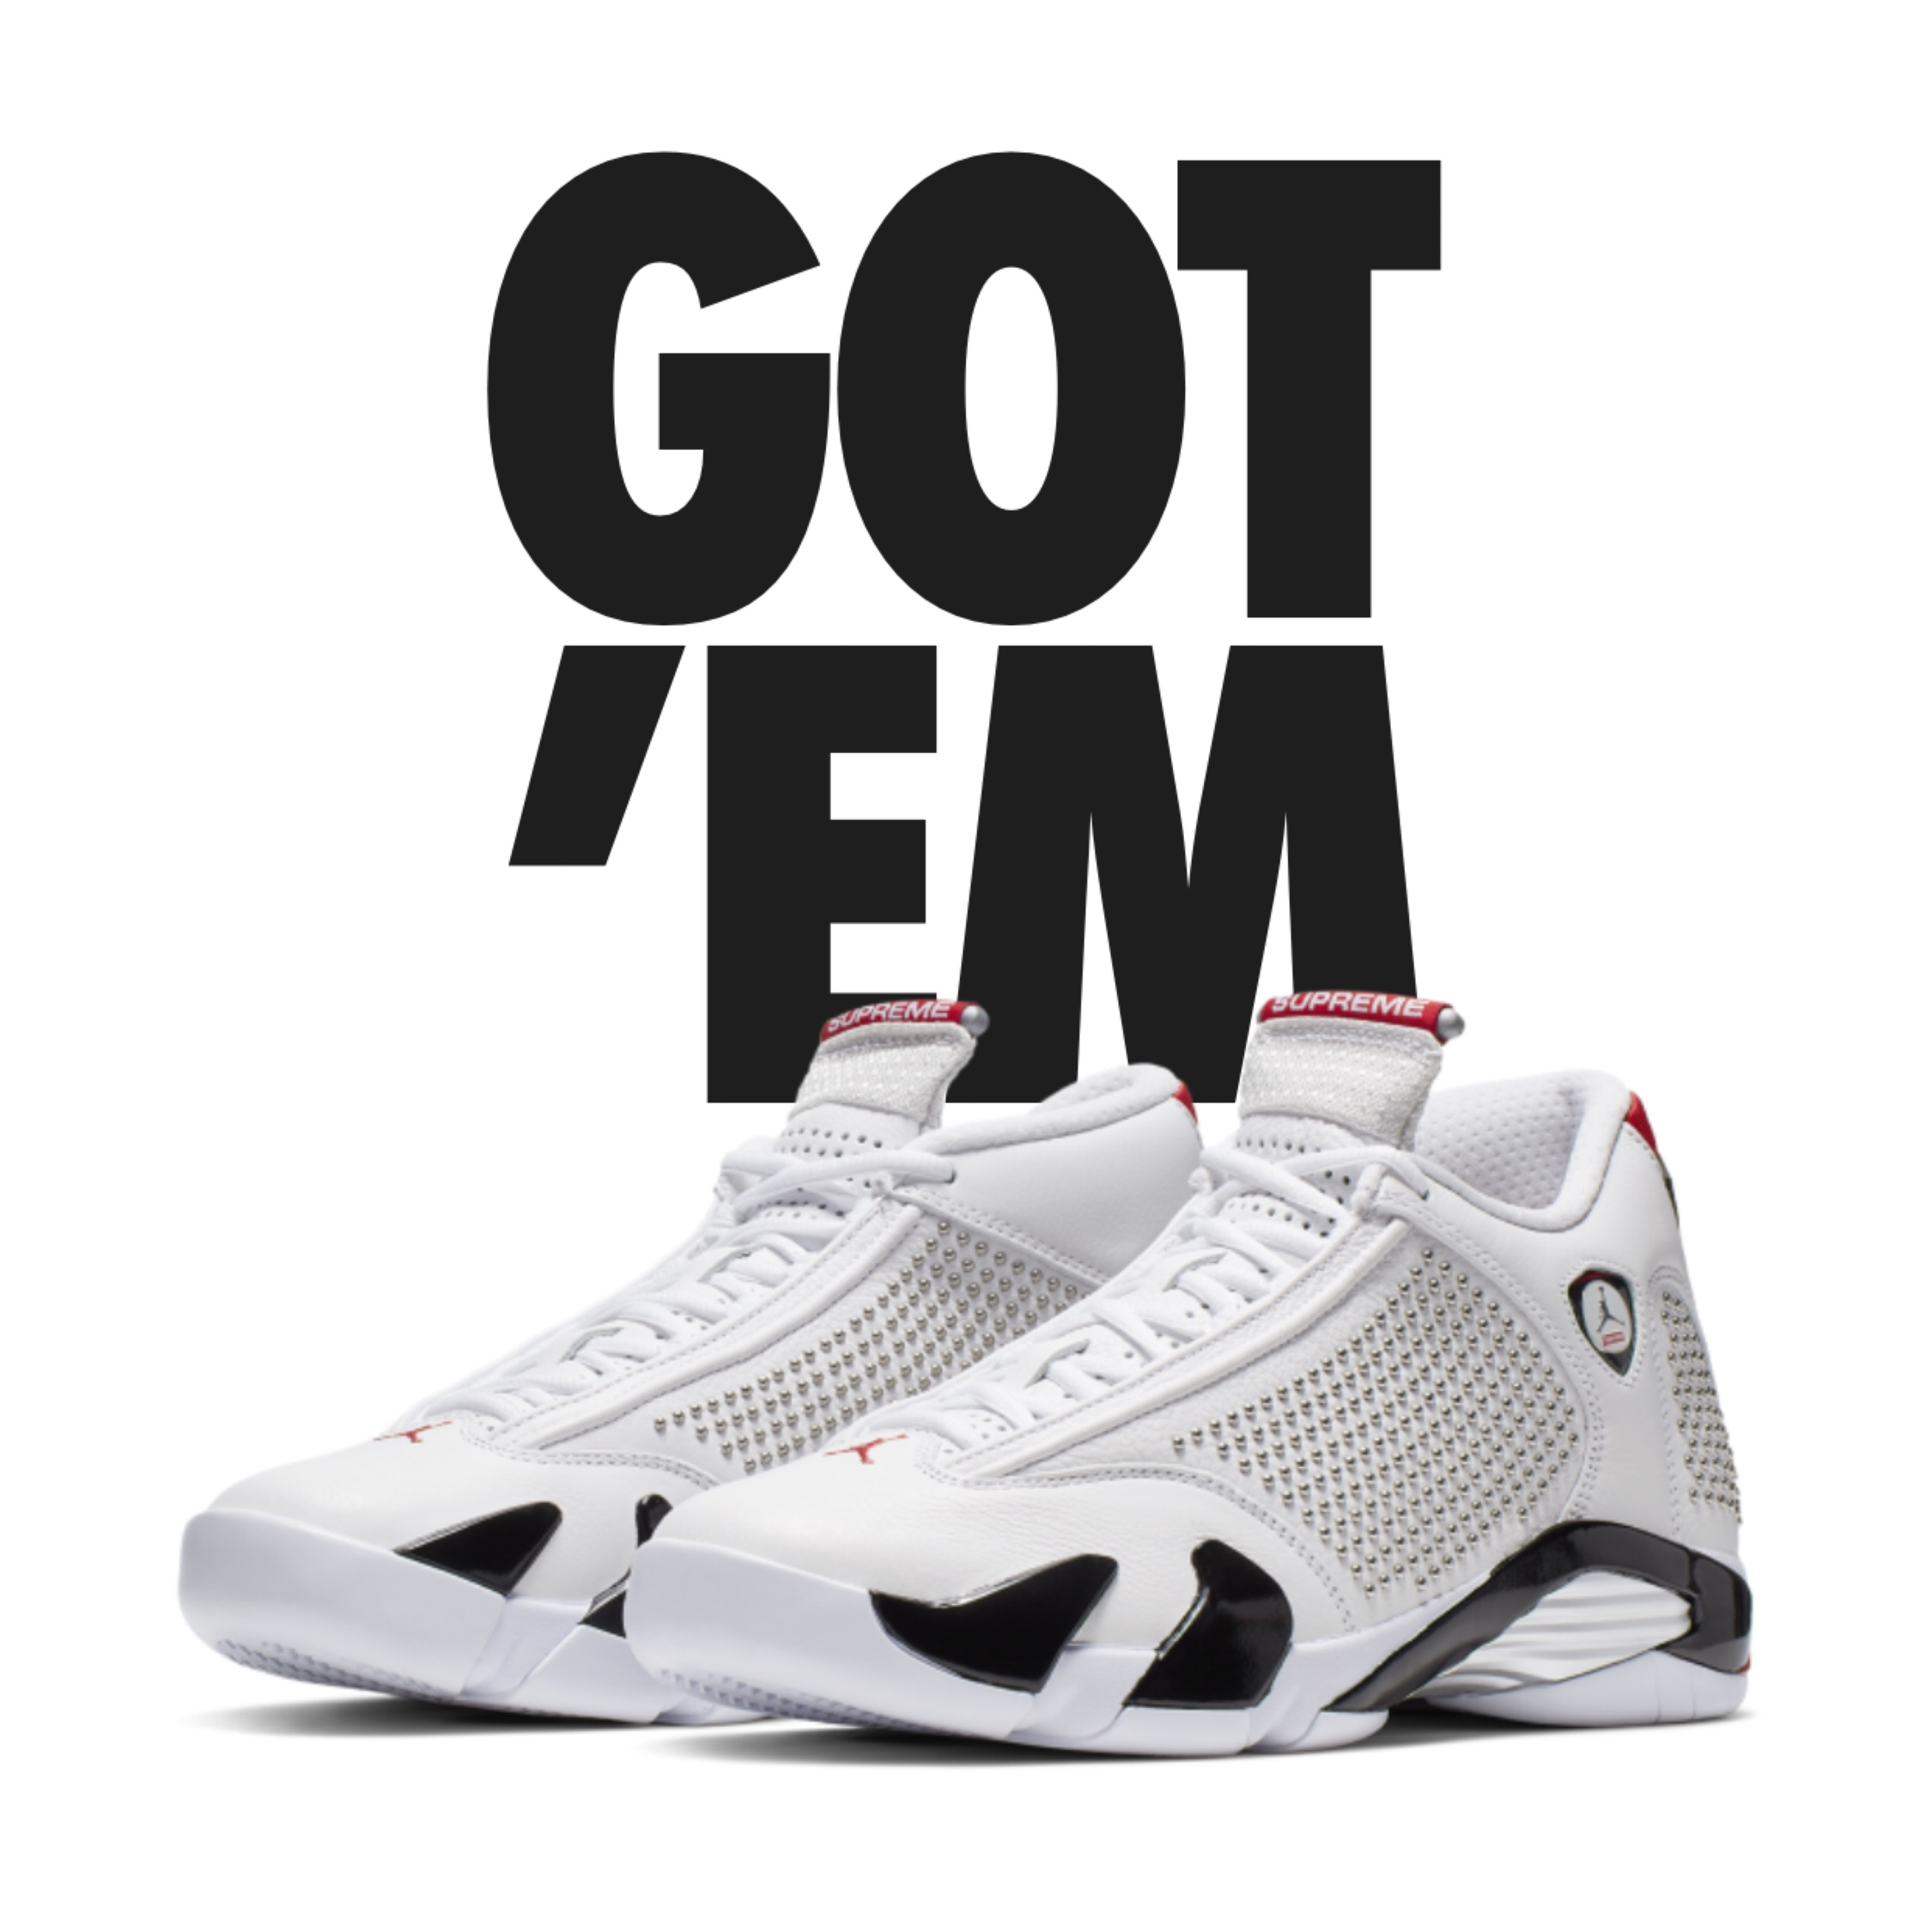 classic fit c7026 ad4cc Air Jordan 14 Retro Supreme White